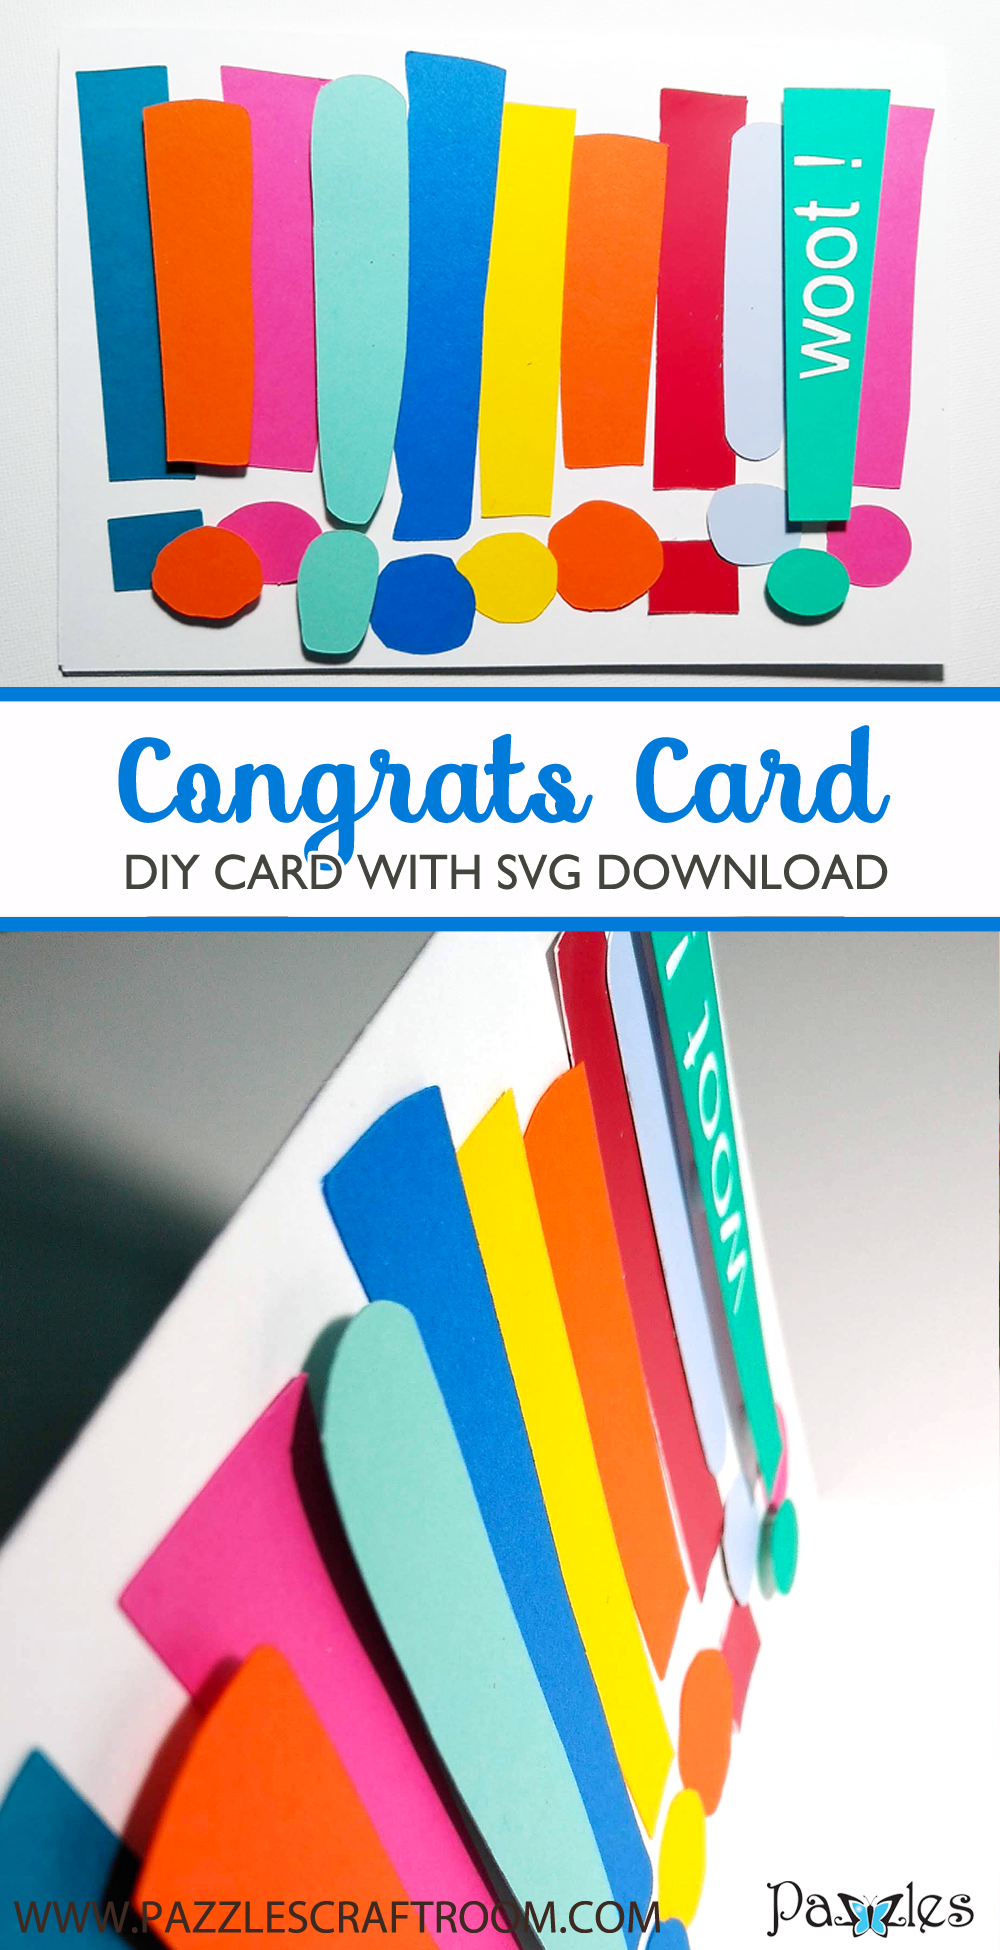 Pazzles DIY Congrats Card with instant SVG download. Compatible with all major electronic cutters including Pazzles Inspiration, Cricut, and Silhouette Cameo. Design by Renee Smart.